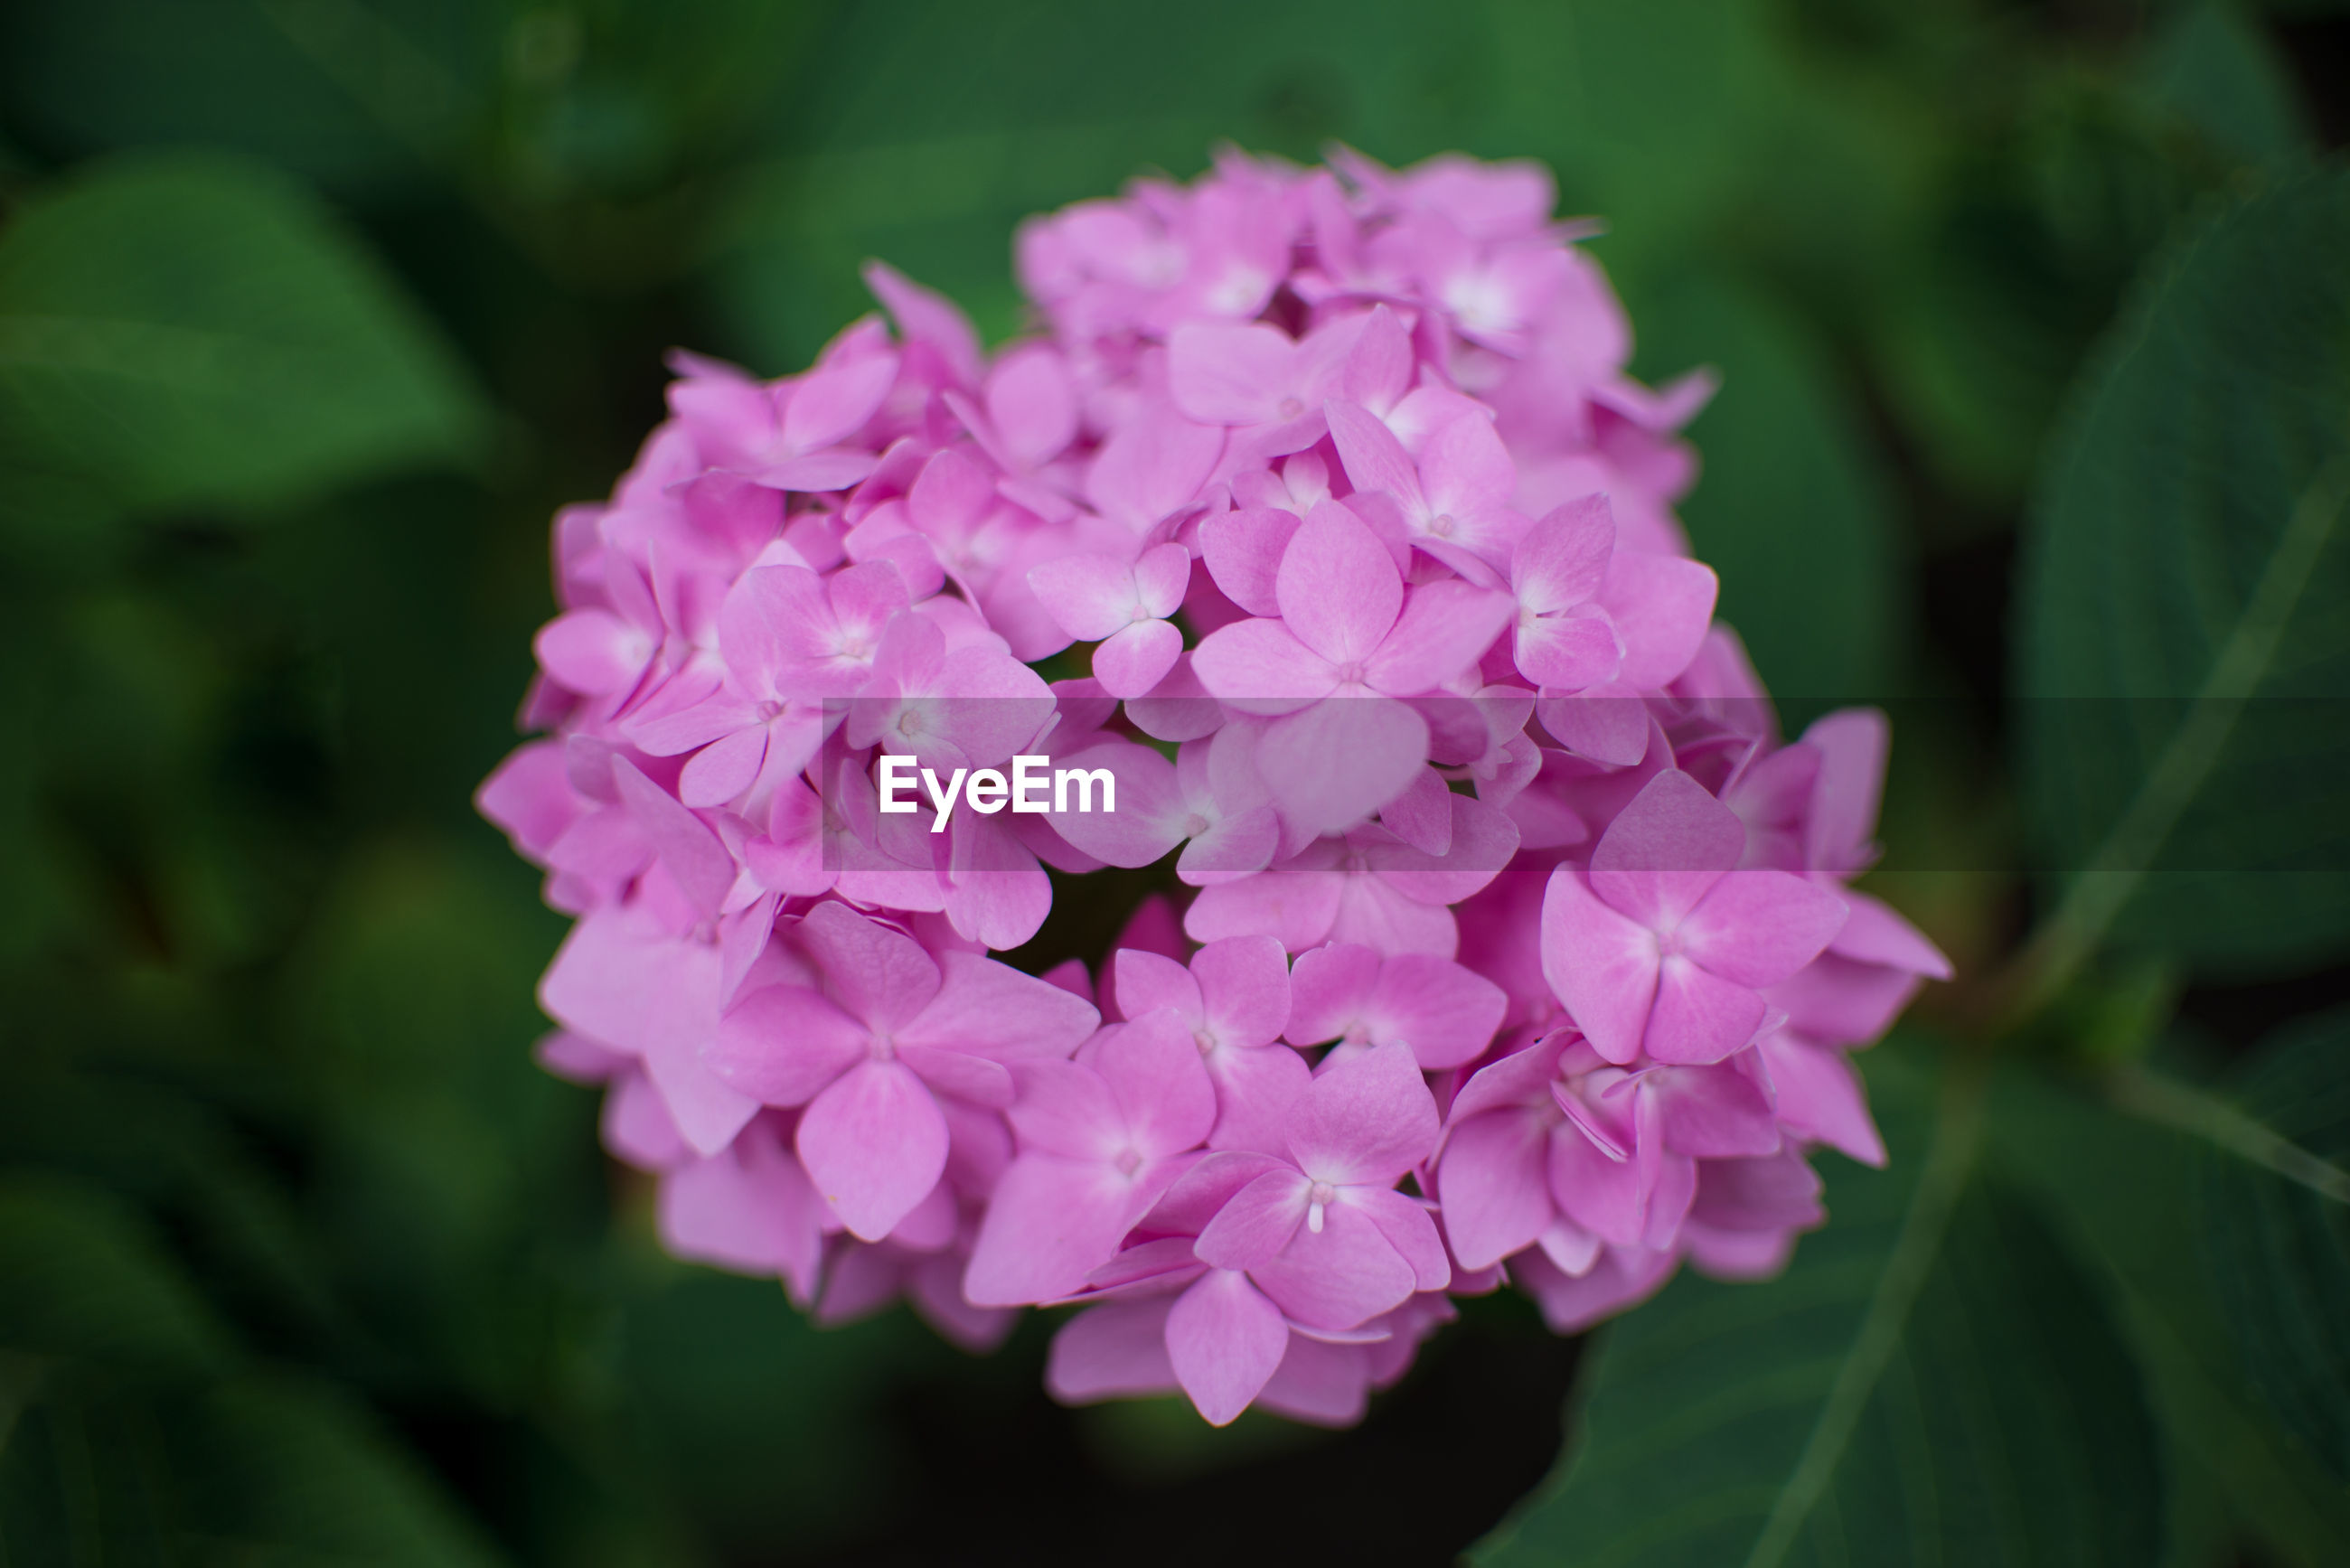 flower, flowering plant, plant, pink, beauty in nature, freshness, petal, close-up, nature, inflorescence, flower head, fragility, leaf, plant part, growth, lilac, no people, springtime, macro photography, hydrangea, magenta, outdoors, focus on foreground, blossom, purple